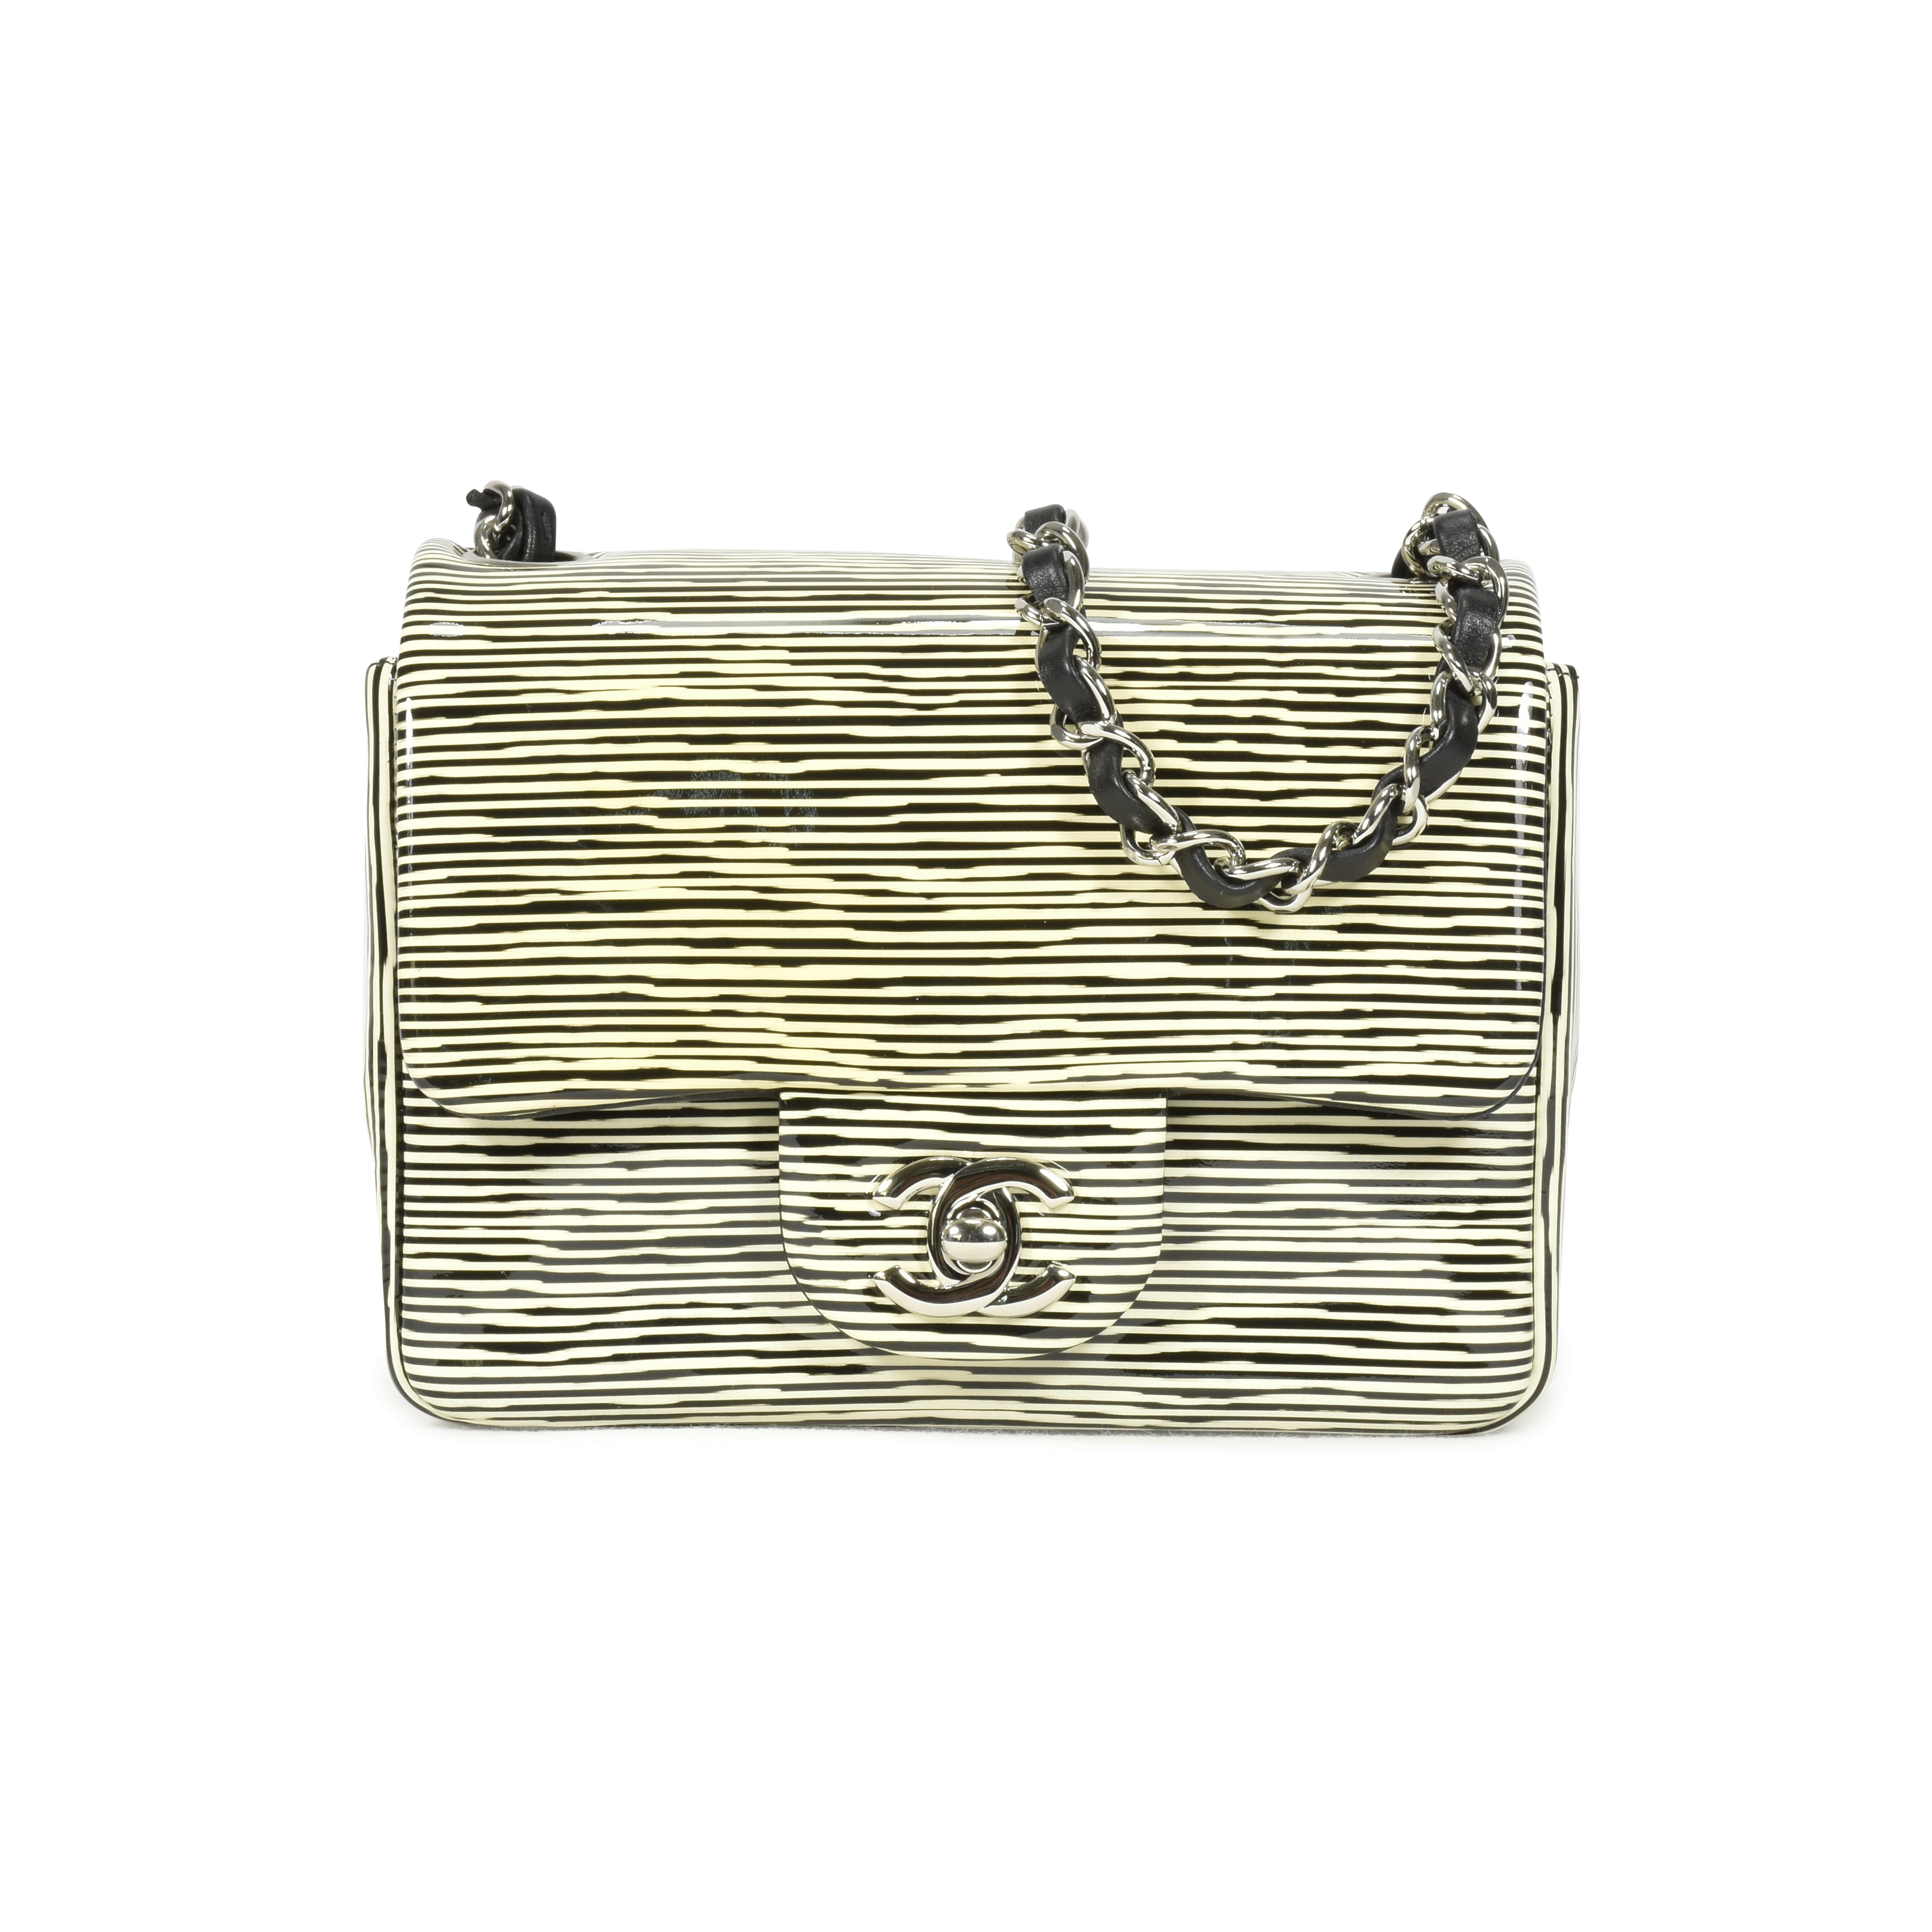 bb592884f297 Authentic Second Hand Chanel Striped Patent Mini Classic Flap Bag  (PSS-139-00030) | THE FIFTH COLLECTION